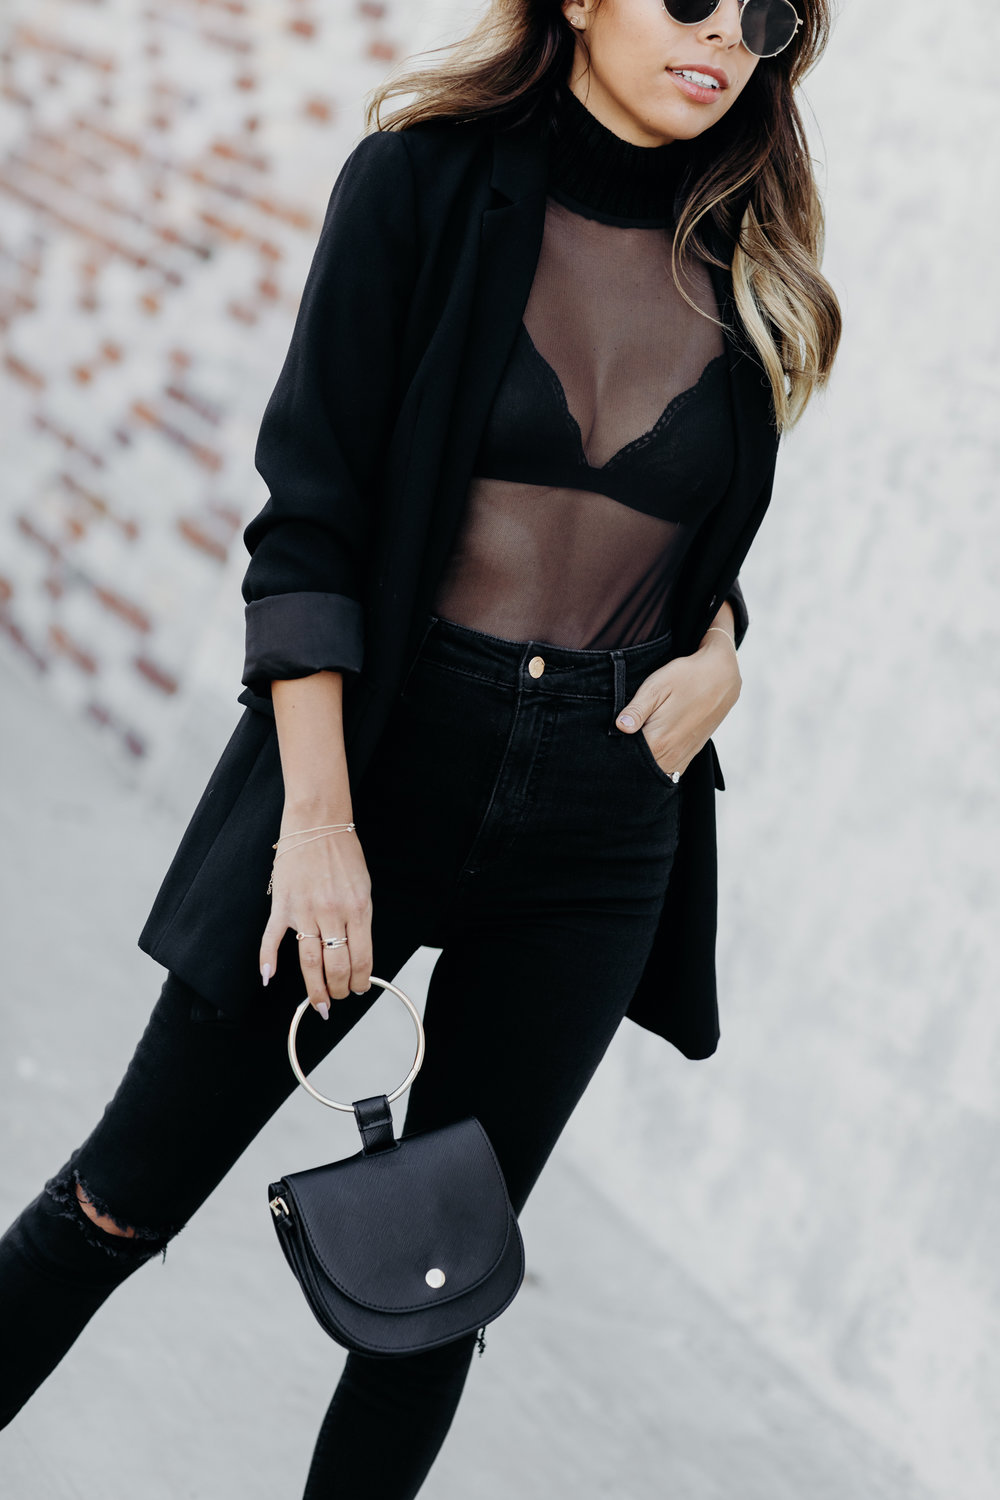 how to wear bralette with sheer top